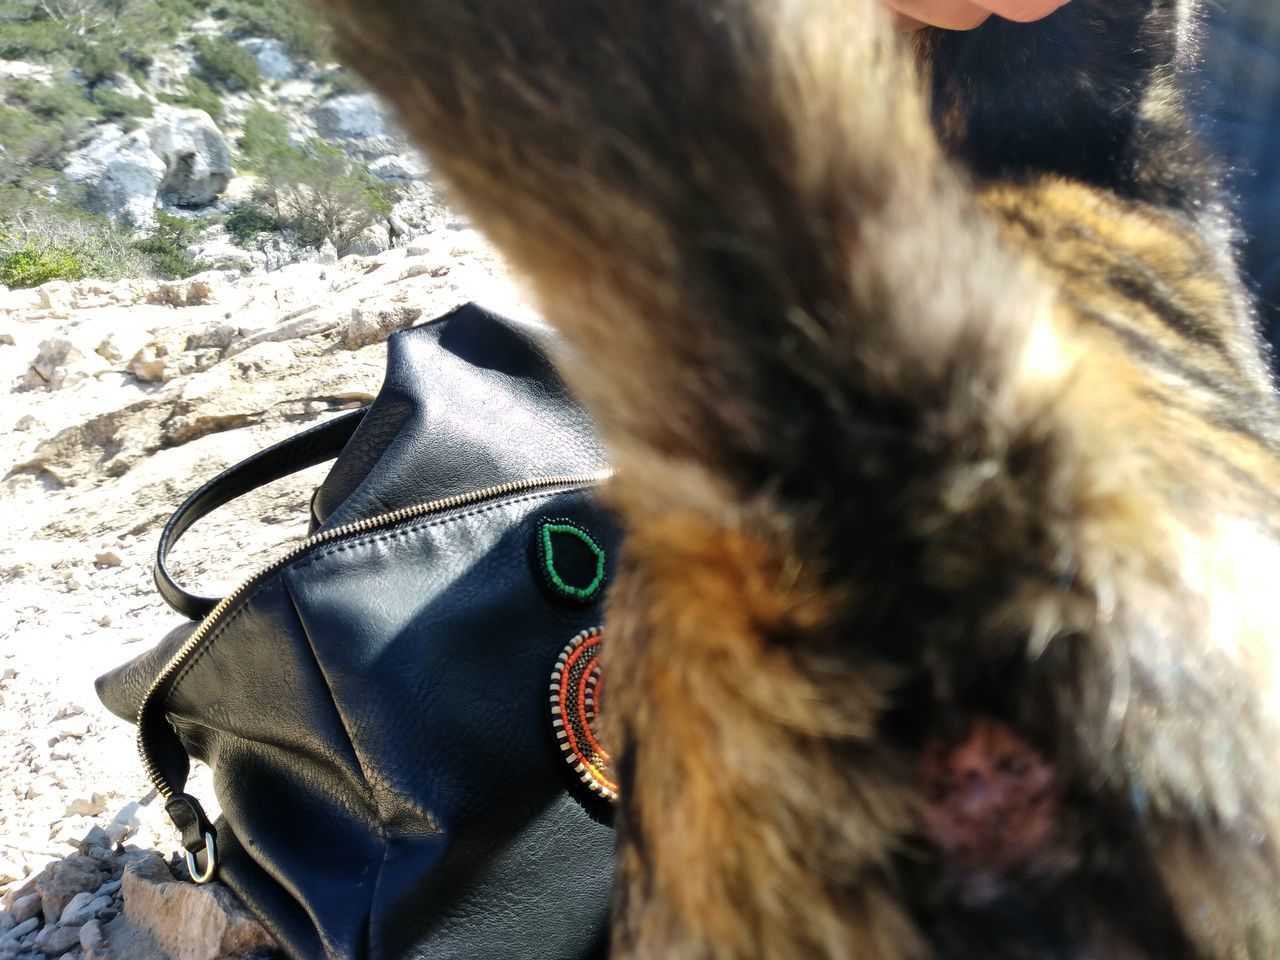 Now it's not at arty photo I share with you here it's just a bit of humour. Joking around while befriending a cat I took a picture of its arse.... Little did I know, it has human face for a bum hole Domestic Animals Outdoors One Animal Human Body Part Animal Themes Adult Forever Alone Spooky Walking Around ArtWork Baleric Islands Its Me! Mymind Holes Bum Day  Bums Bum Life Cat Cats Of EyeEm Fur Furry Humanface In Prison Poor Cat Whatcanyousee